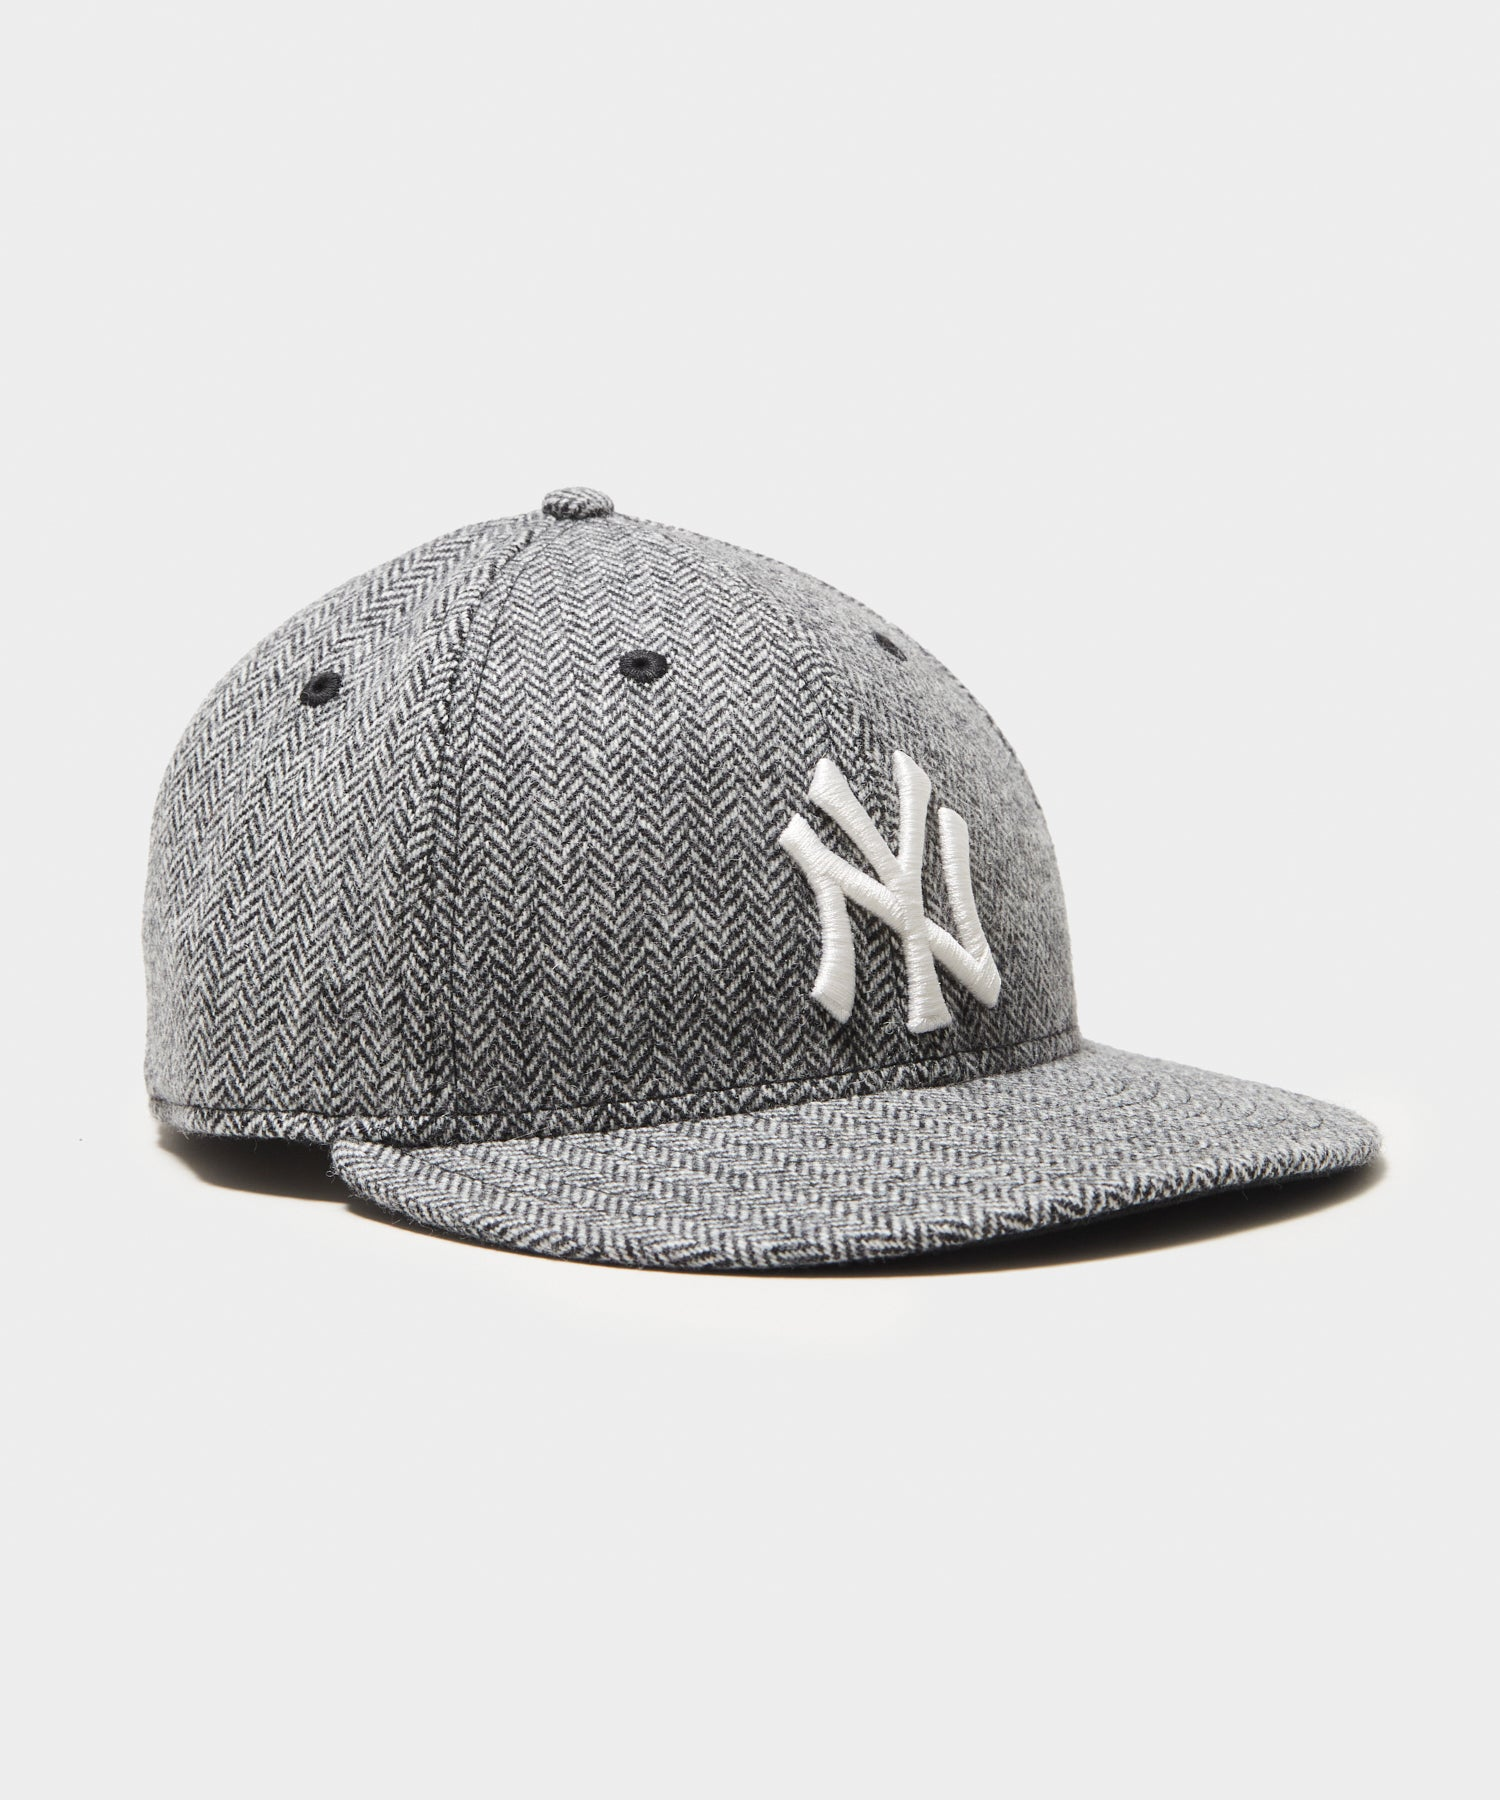 Todd Snyder + New Era NY Yankees Low Profile Cap in Wool Herringbone